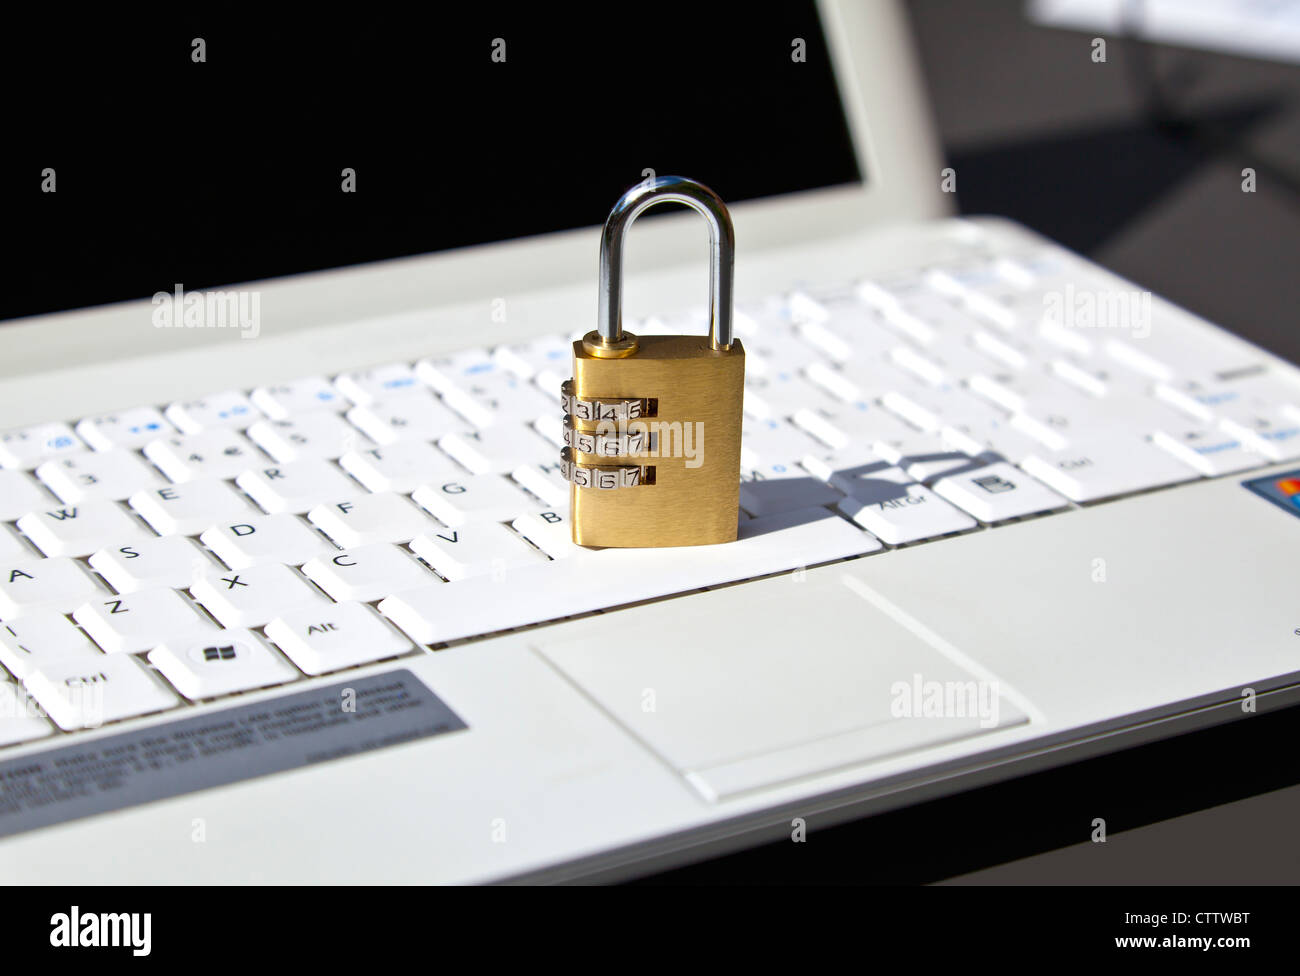 Online security - Stock Image